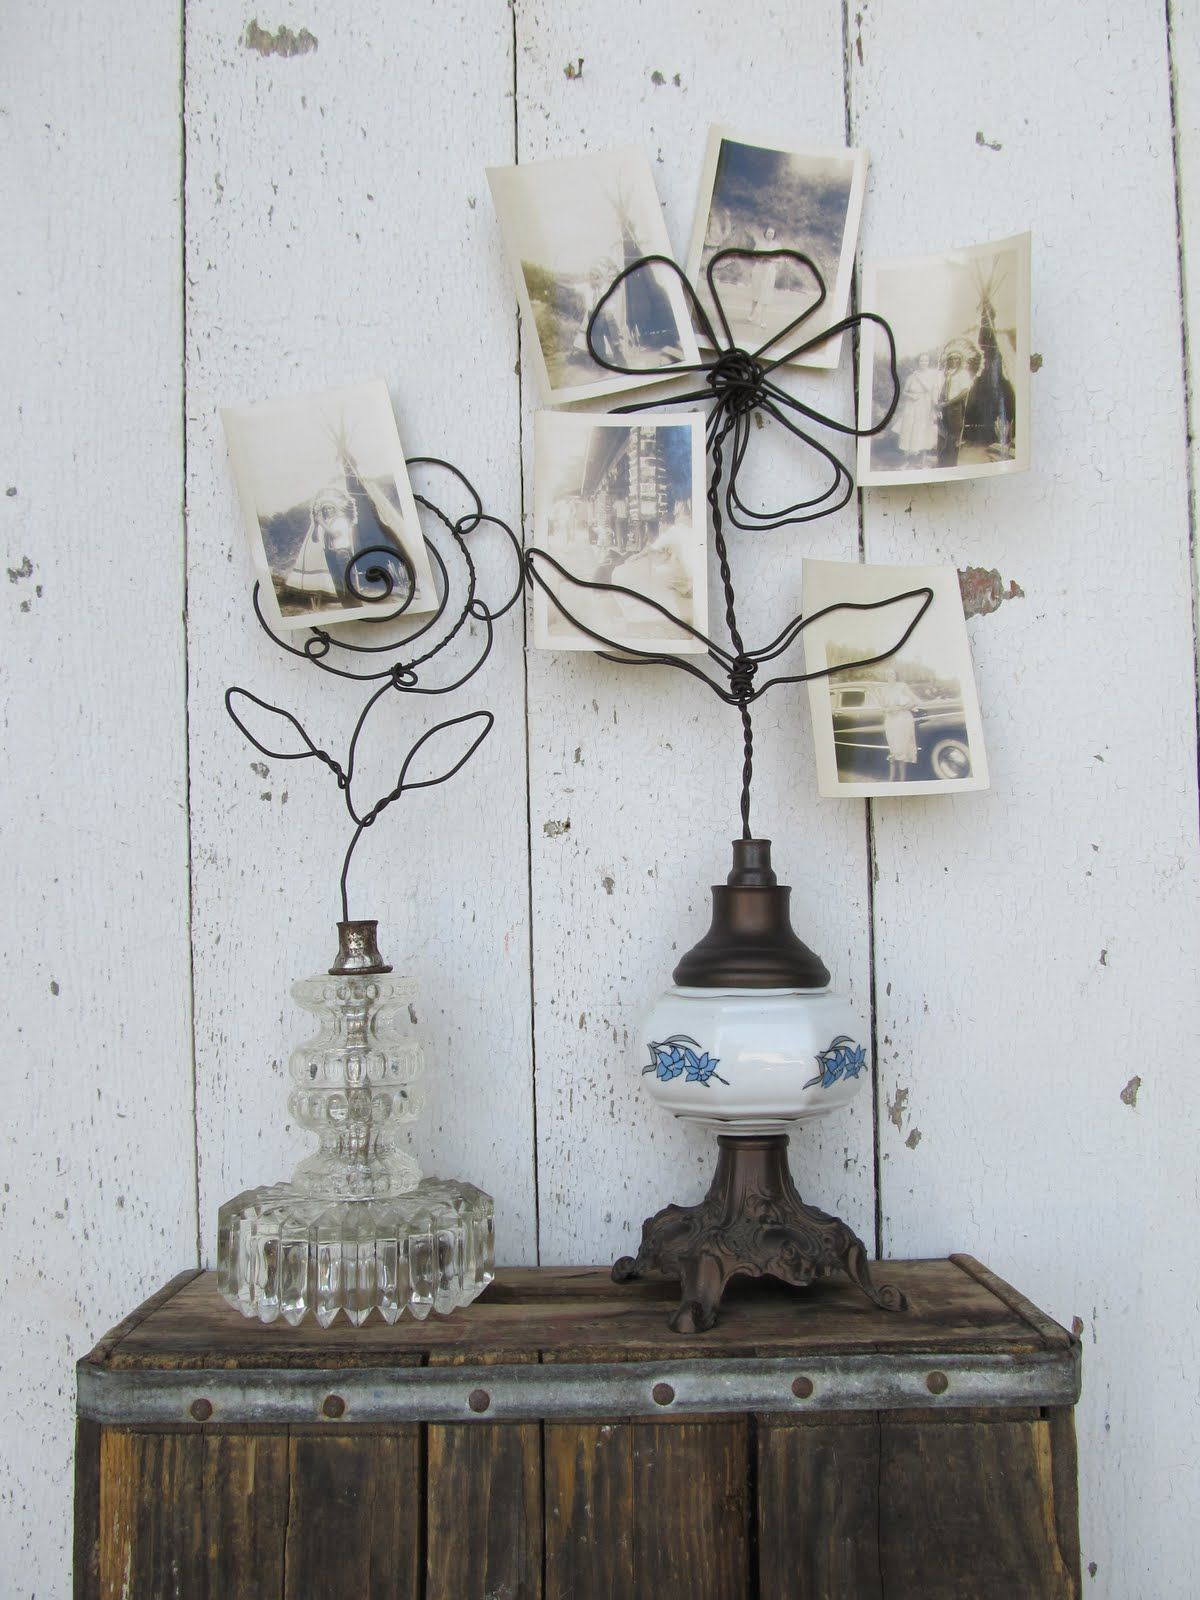 trash to treasure! antique oil lamps reclaimed